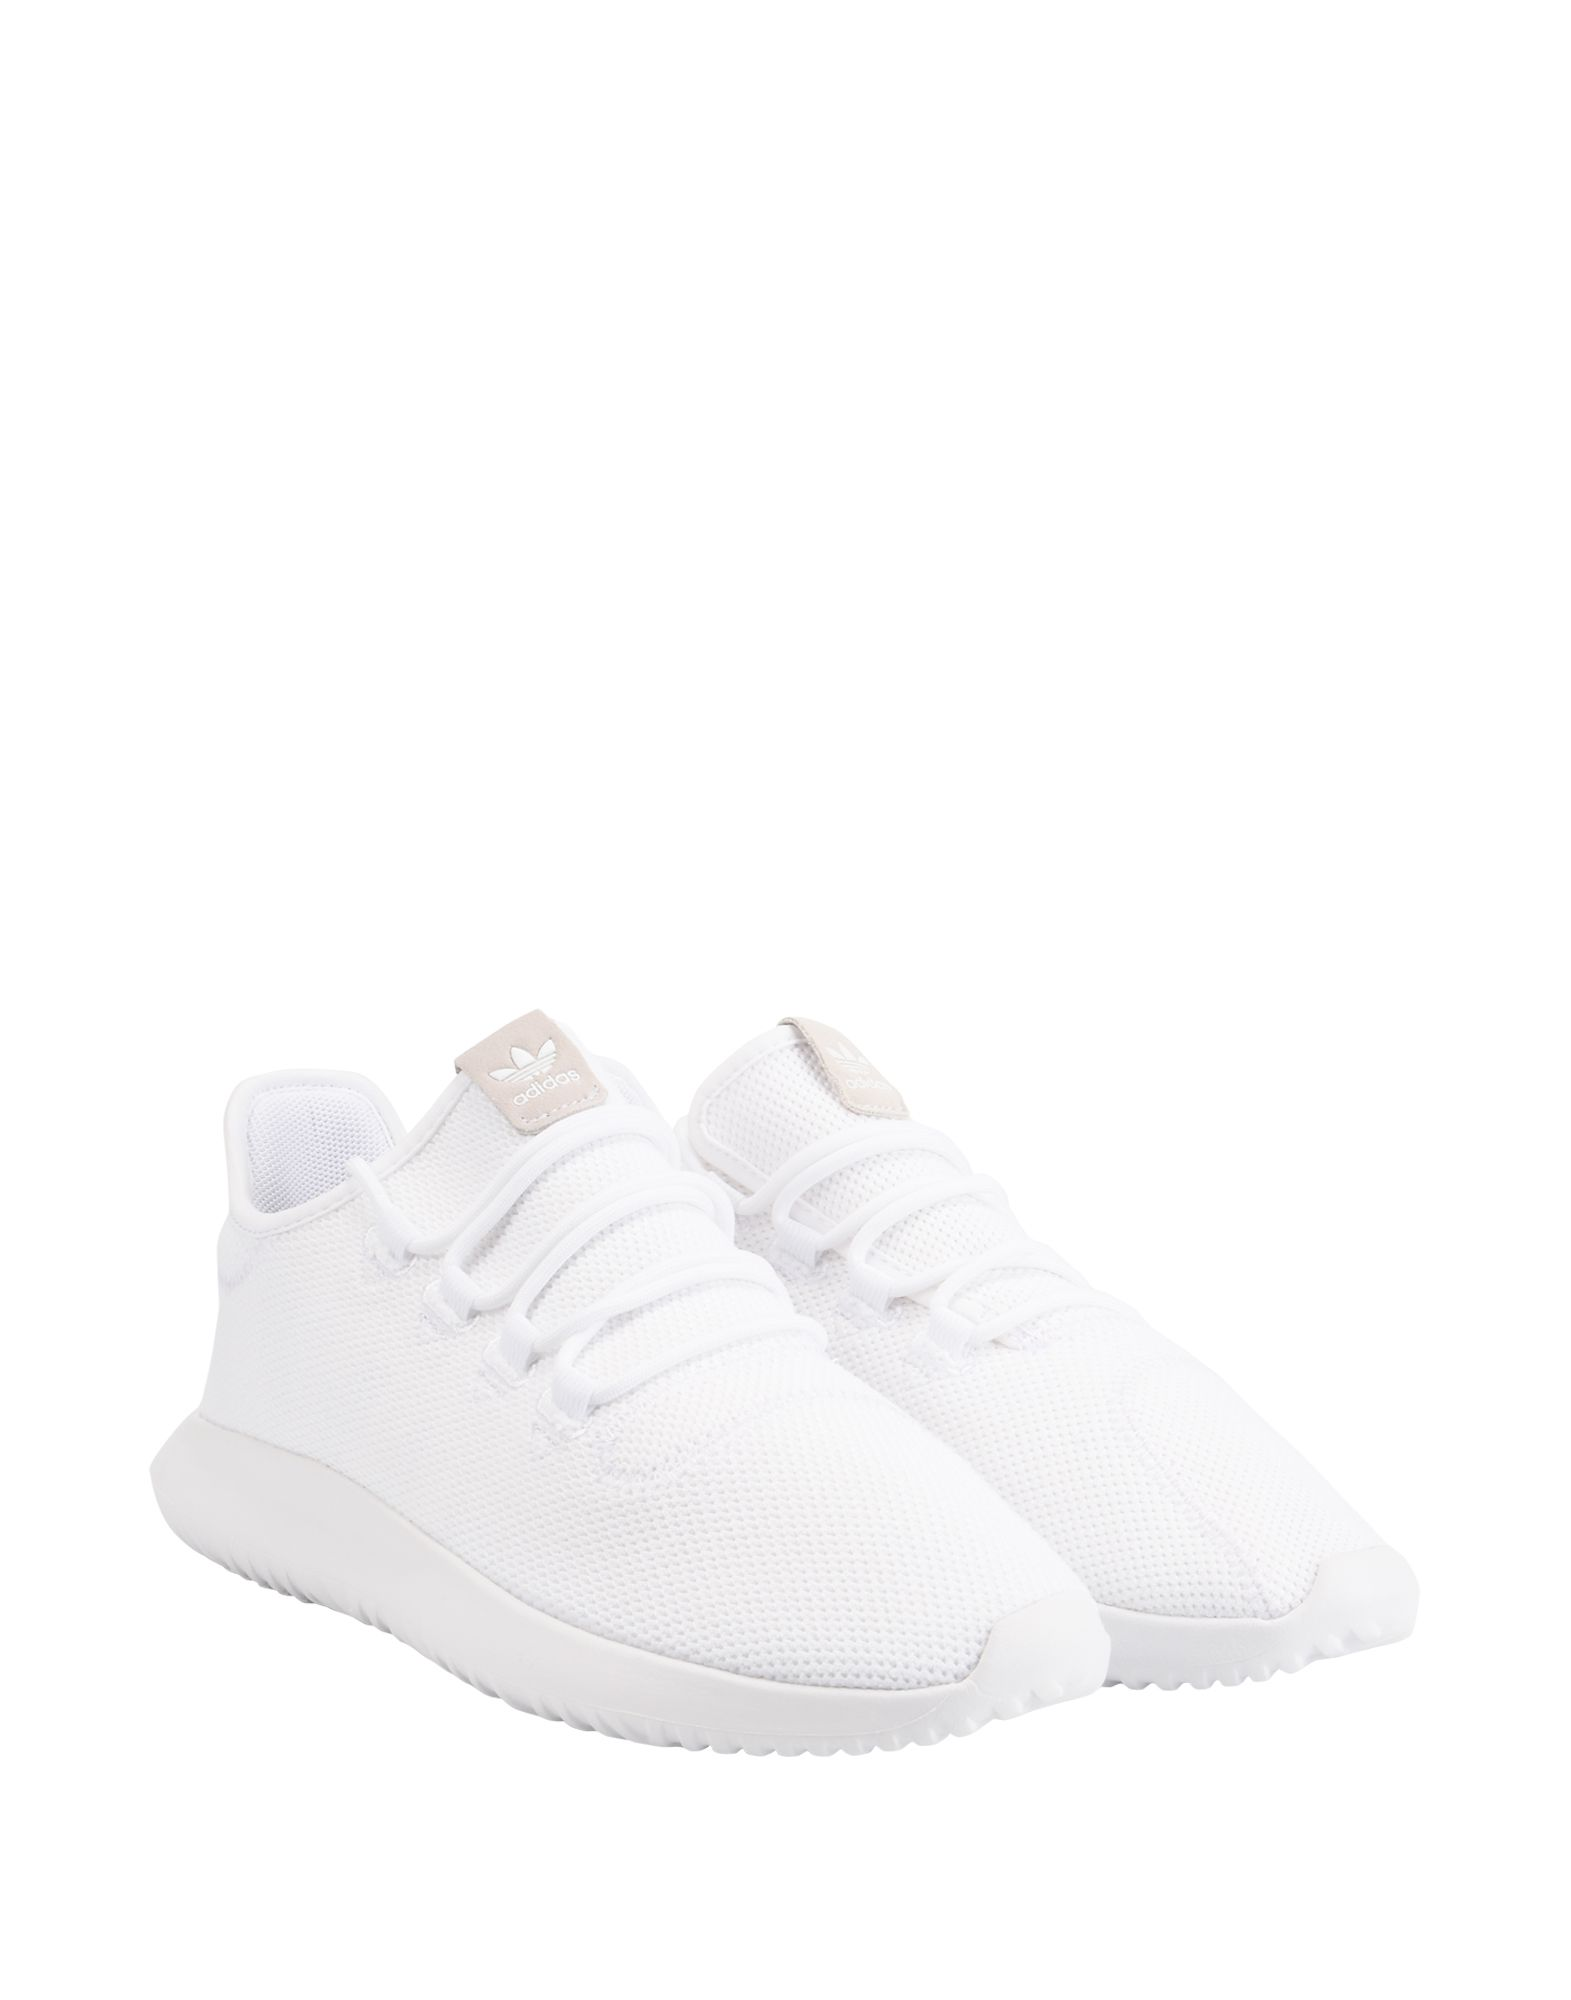 Sneakers Adidas Originals Tubular Shadow - Homme - Sneakers Adidas Originals sur